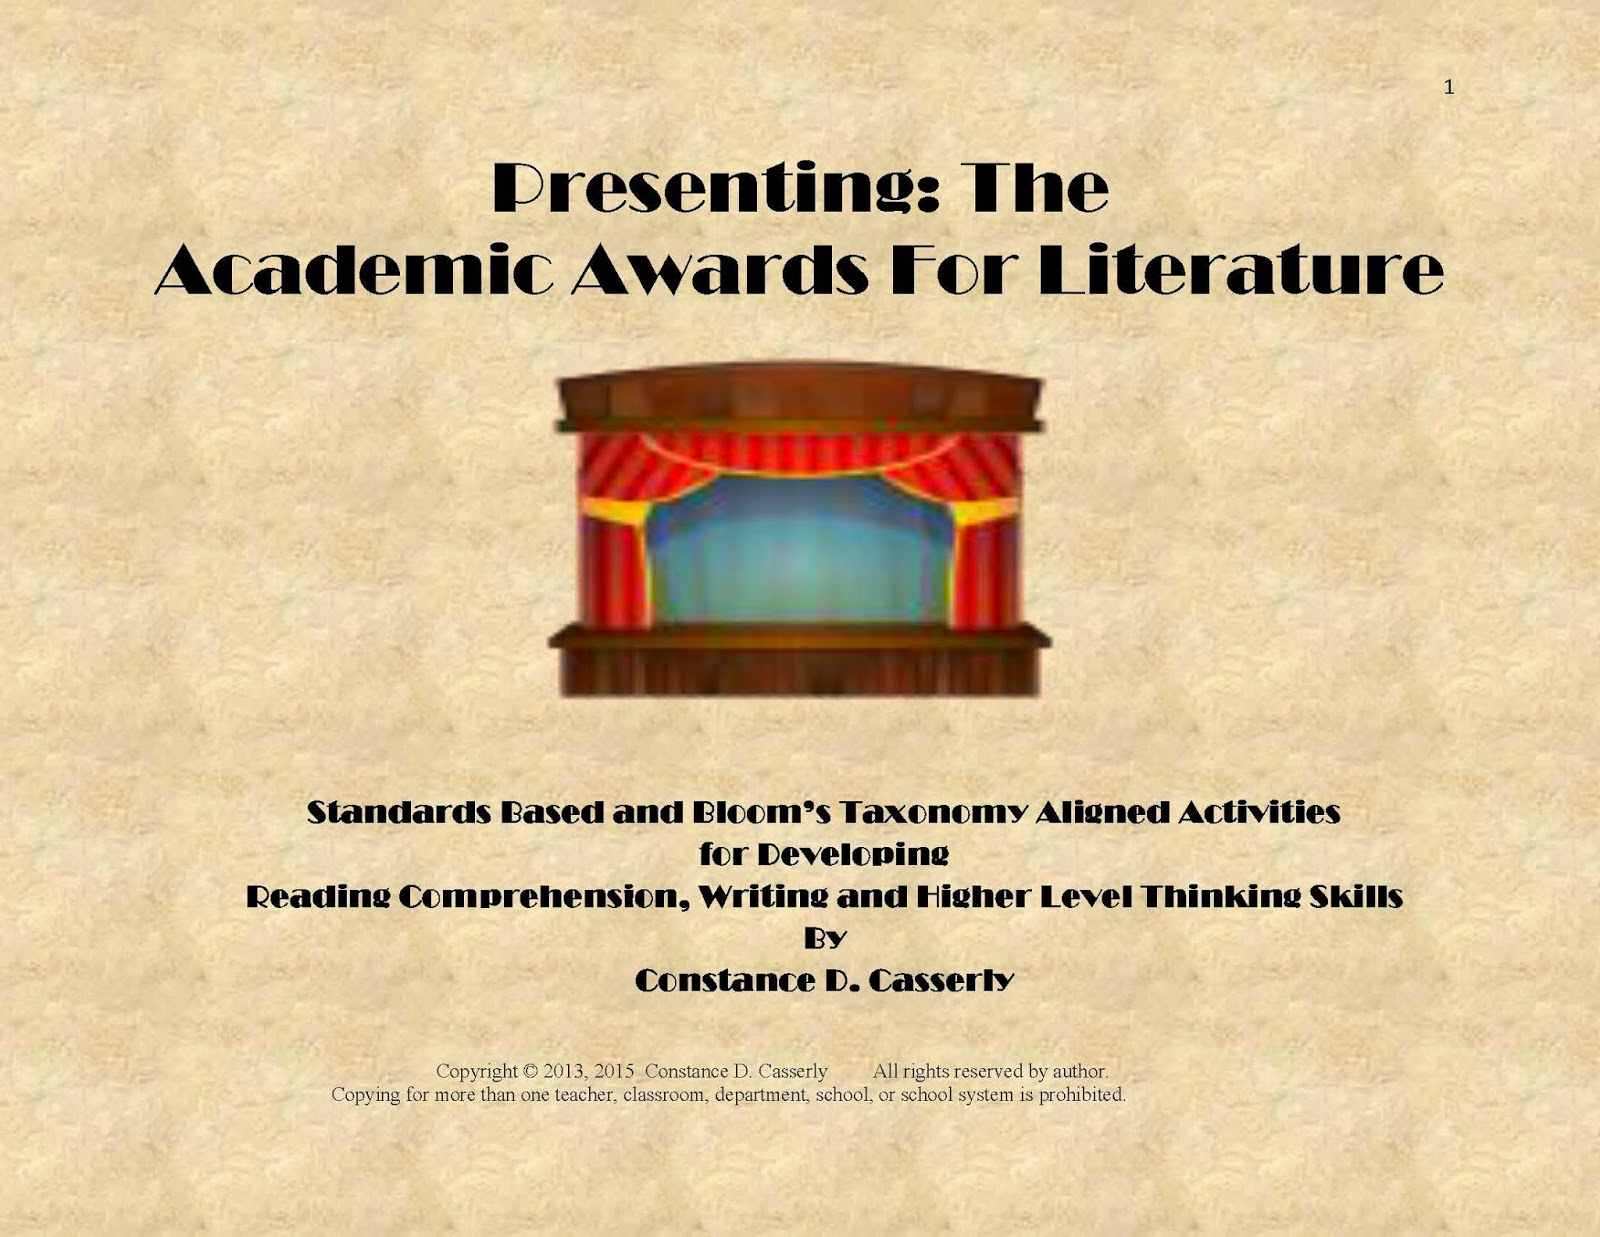 awards for literature